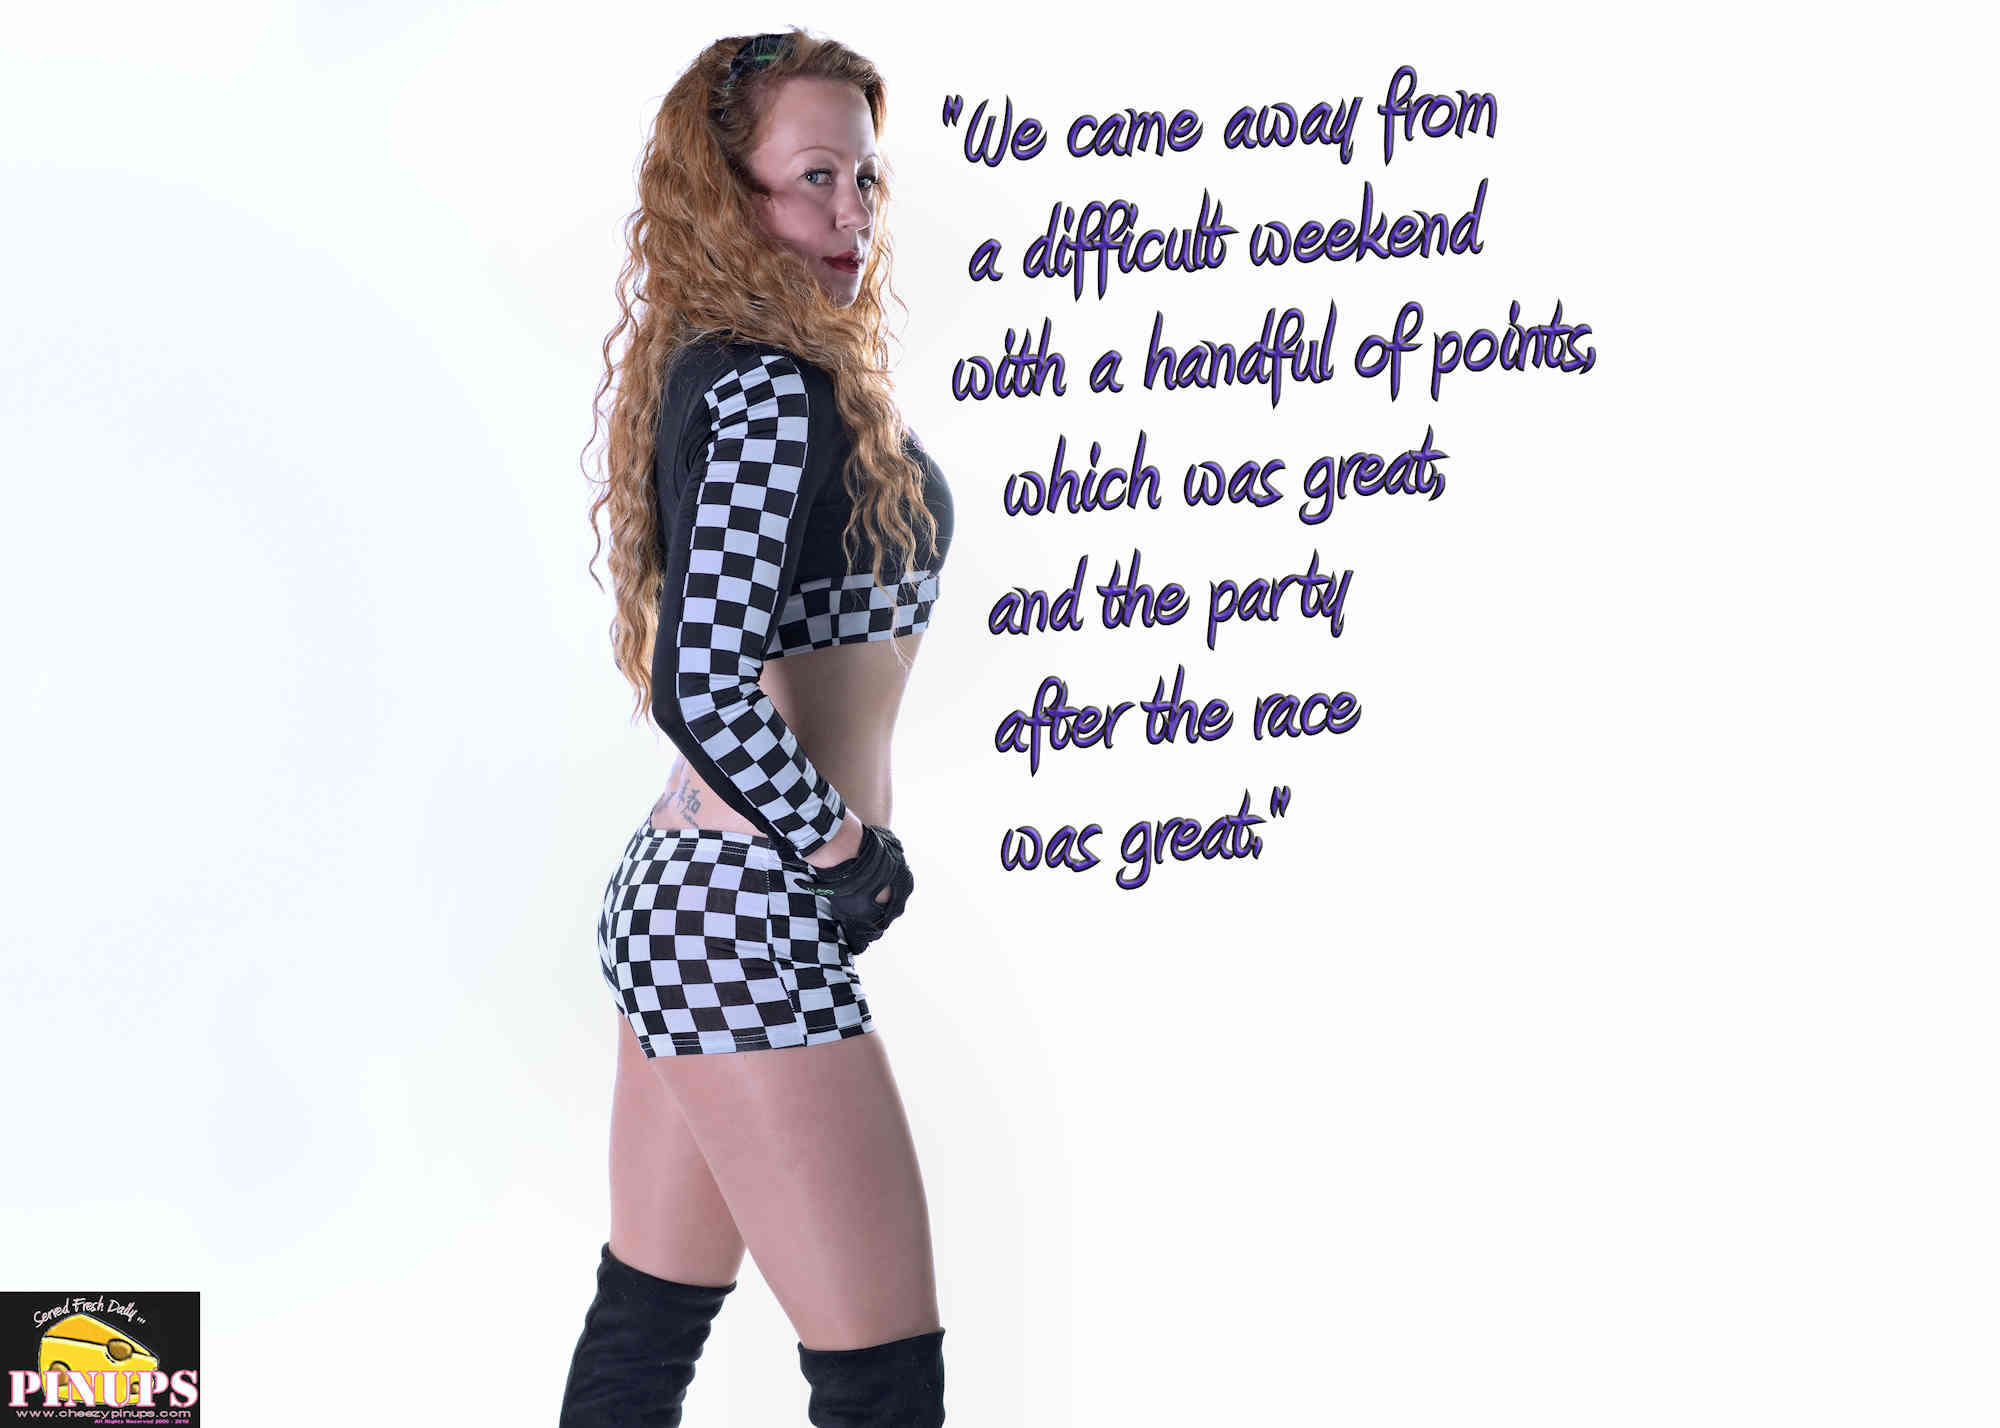 "Cheezy Pinup - September 16, 2018 ""We came away from a difficult weekend with a handful of points, which was great, and the party after the race was great."" - Lance Stroll Model: Emily"